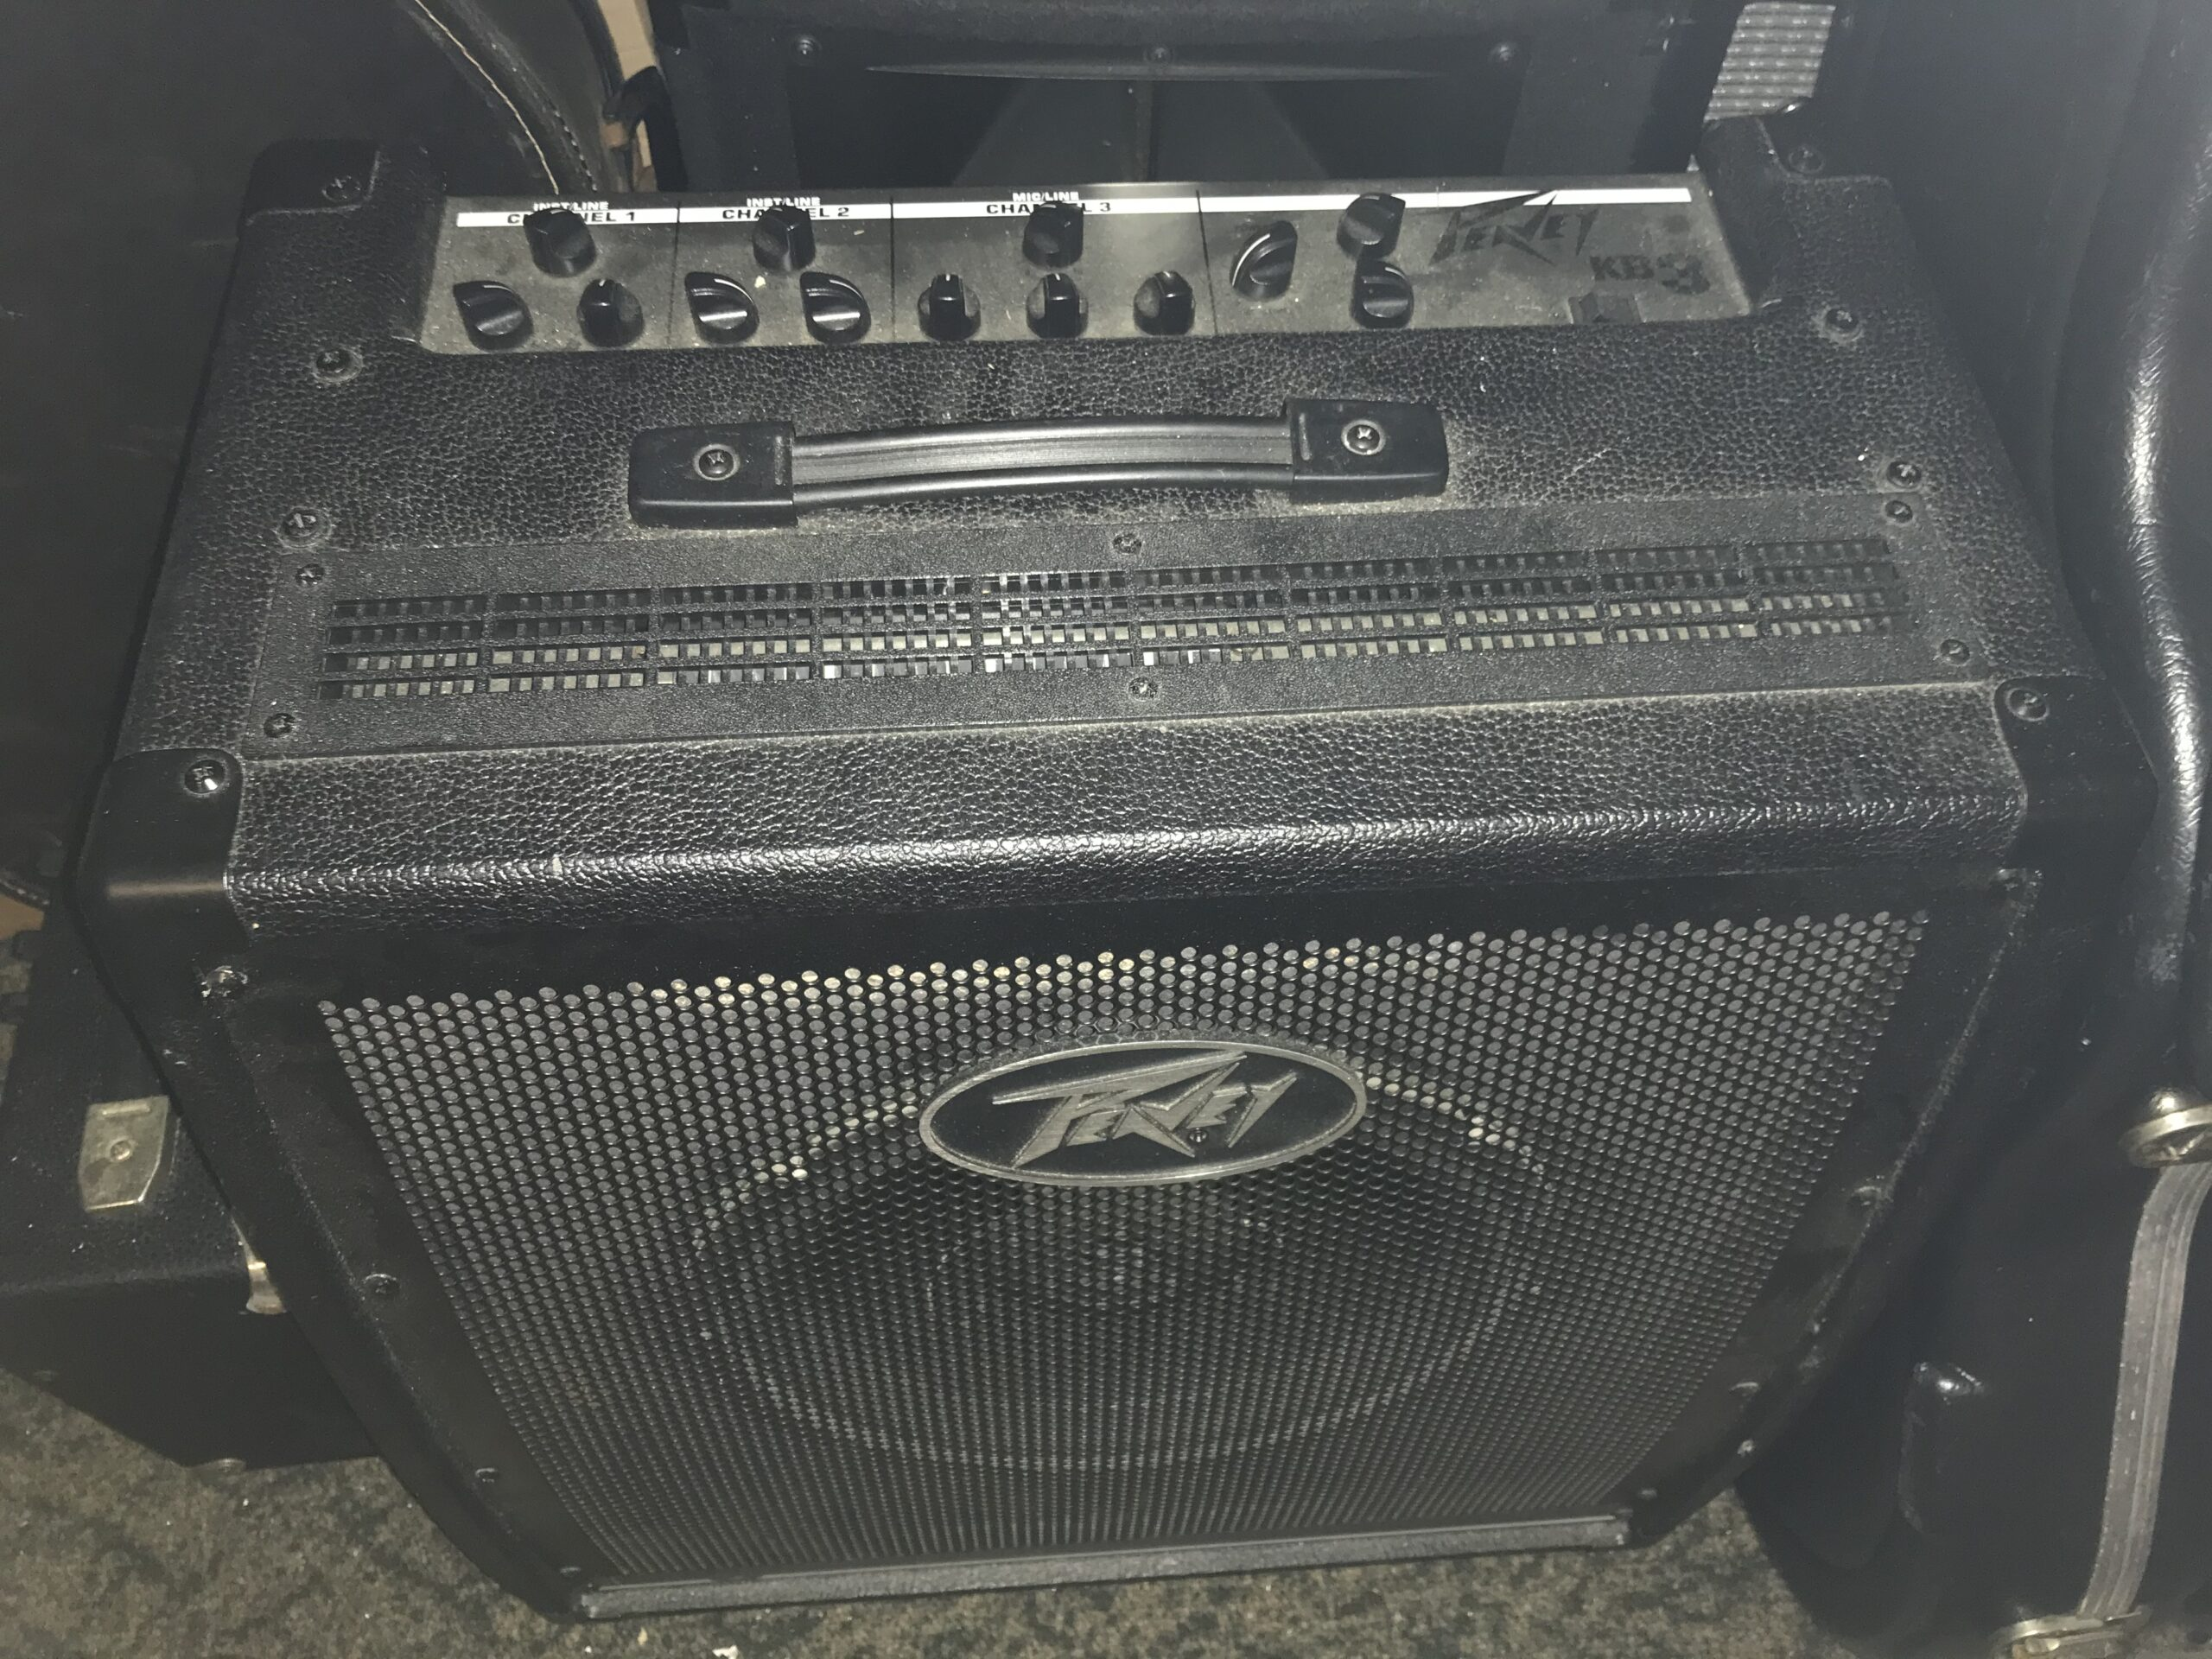 New Peavey KB 3 amp